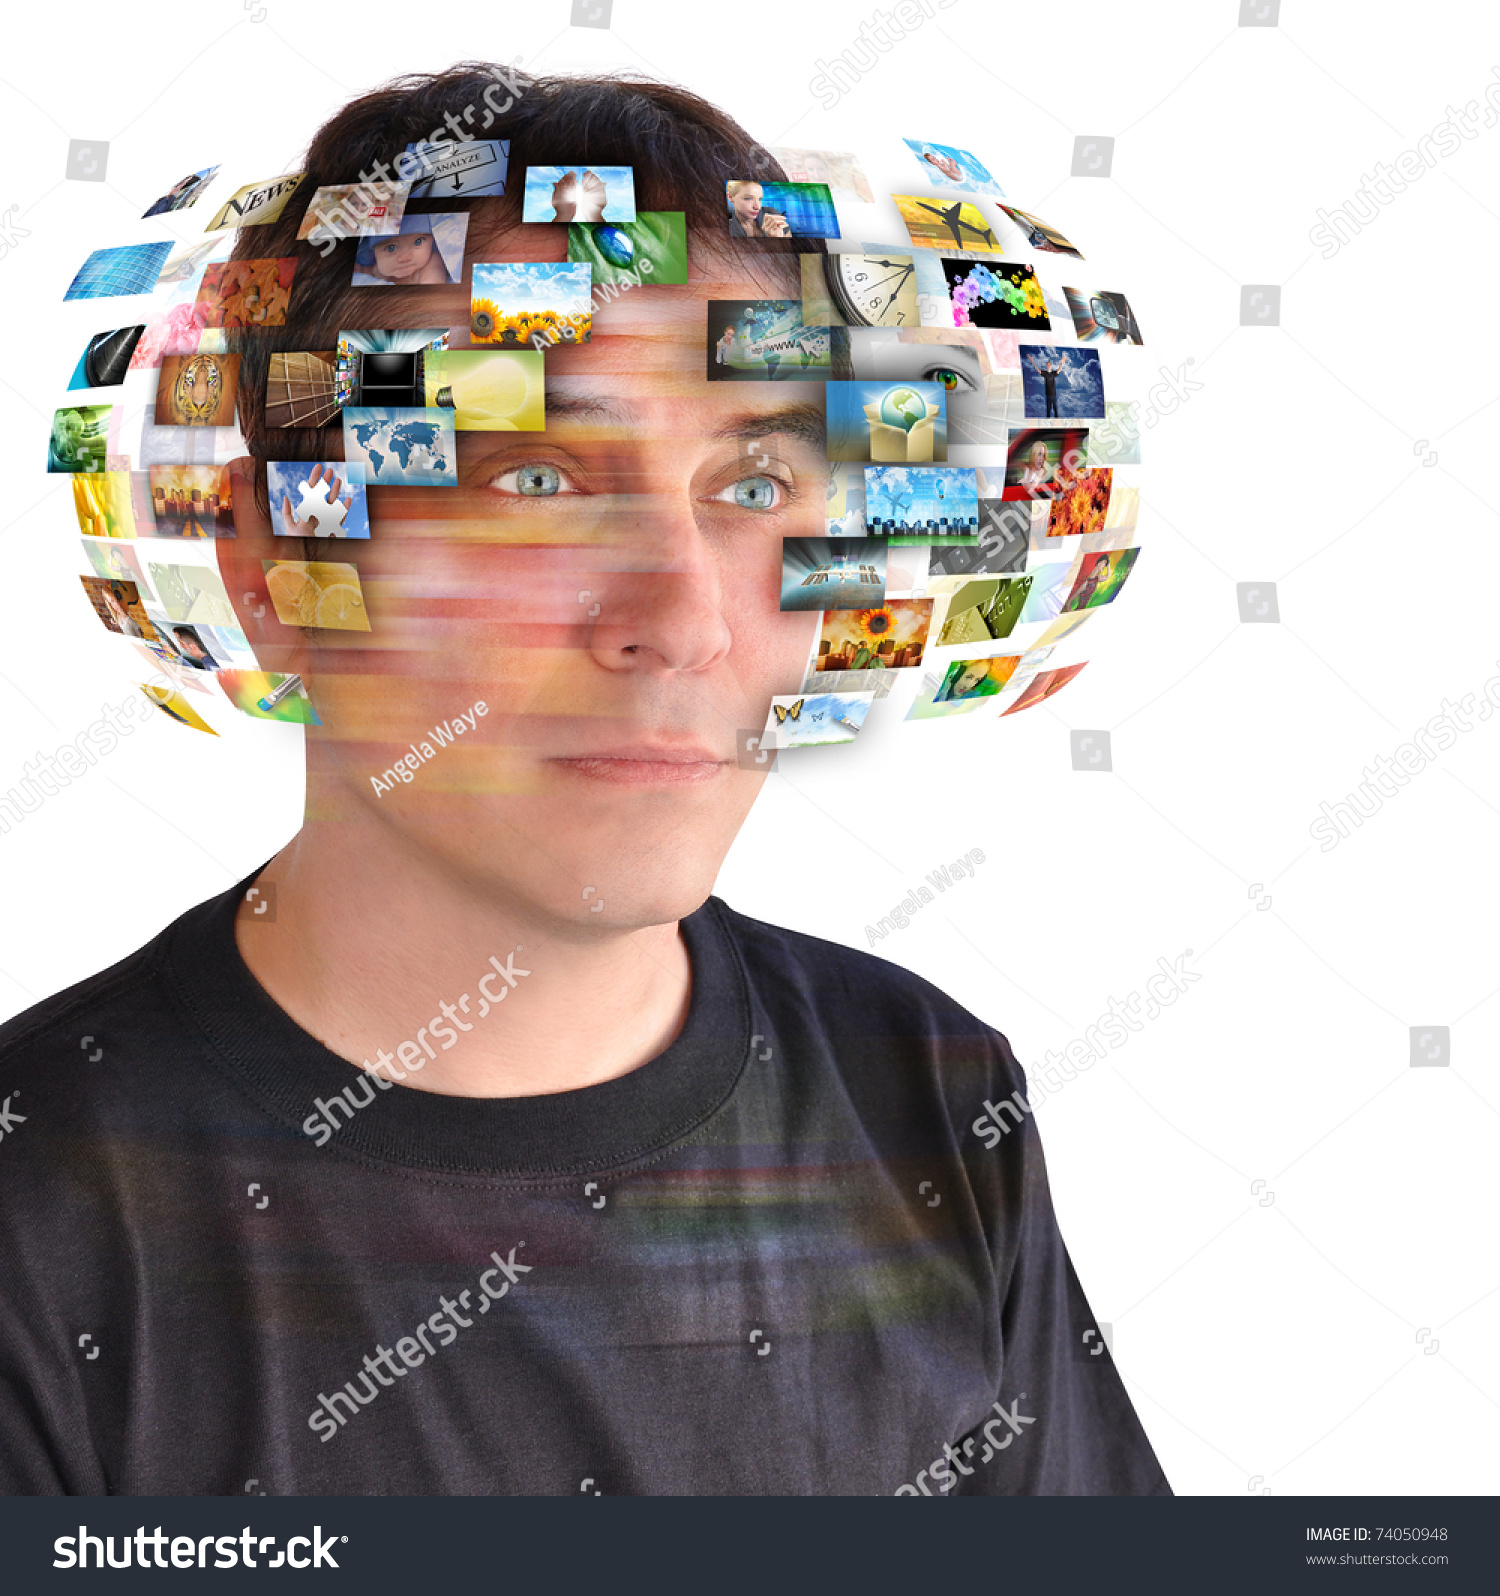 A Technology Man Has Images Around His Head Use It For A